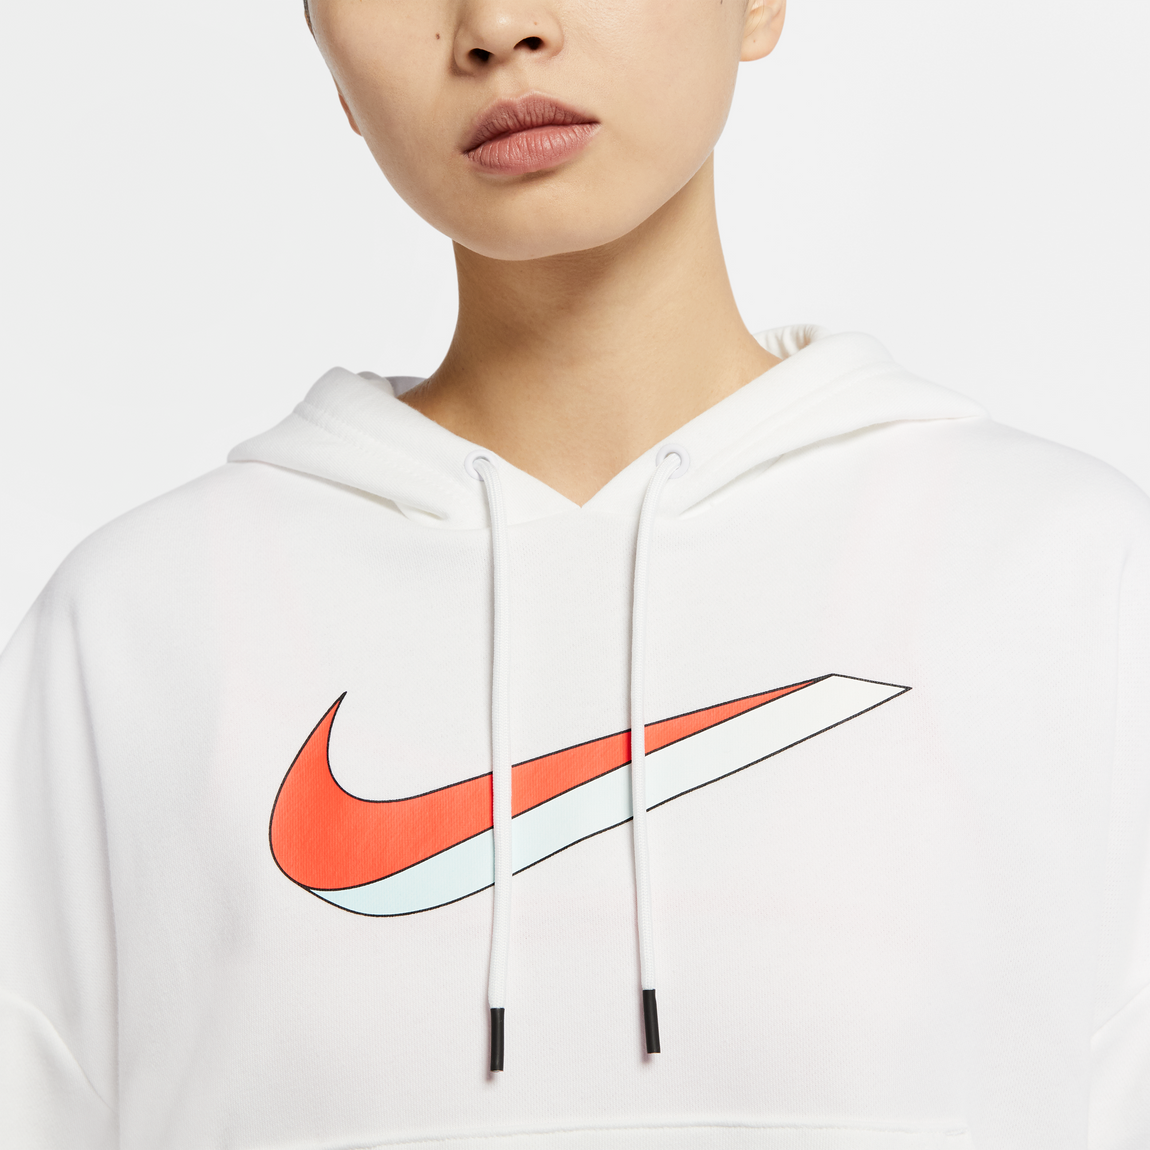 Nike Sportswear Hoodie (White/Solar Red-Light Blue) - Nike Sportswear Hoodie (White/Solar Red-Light Blue) -